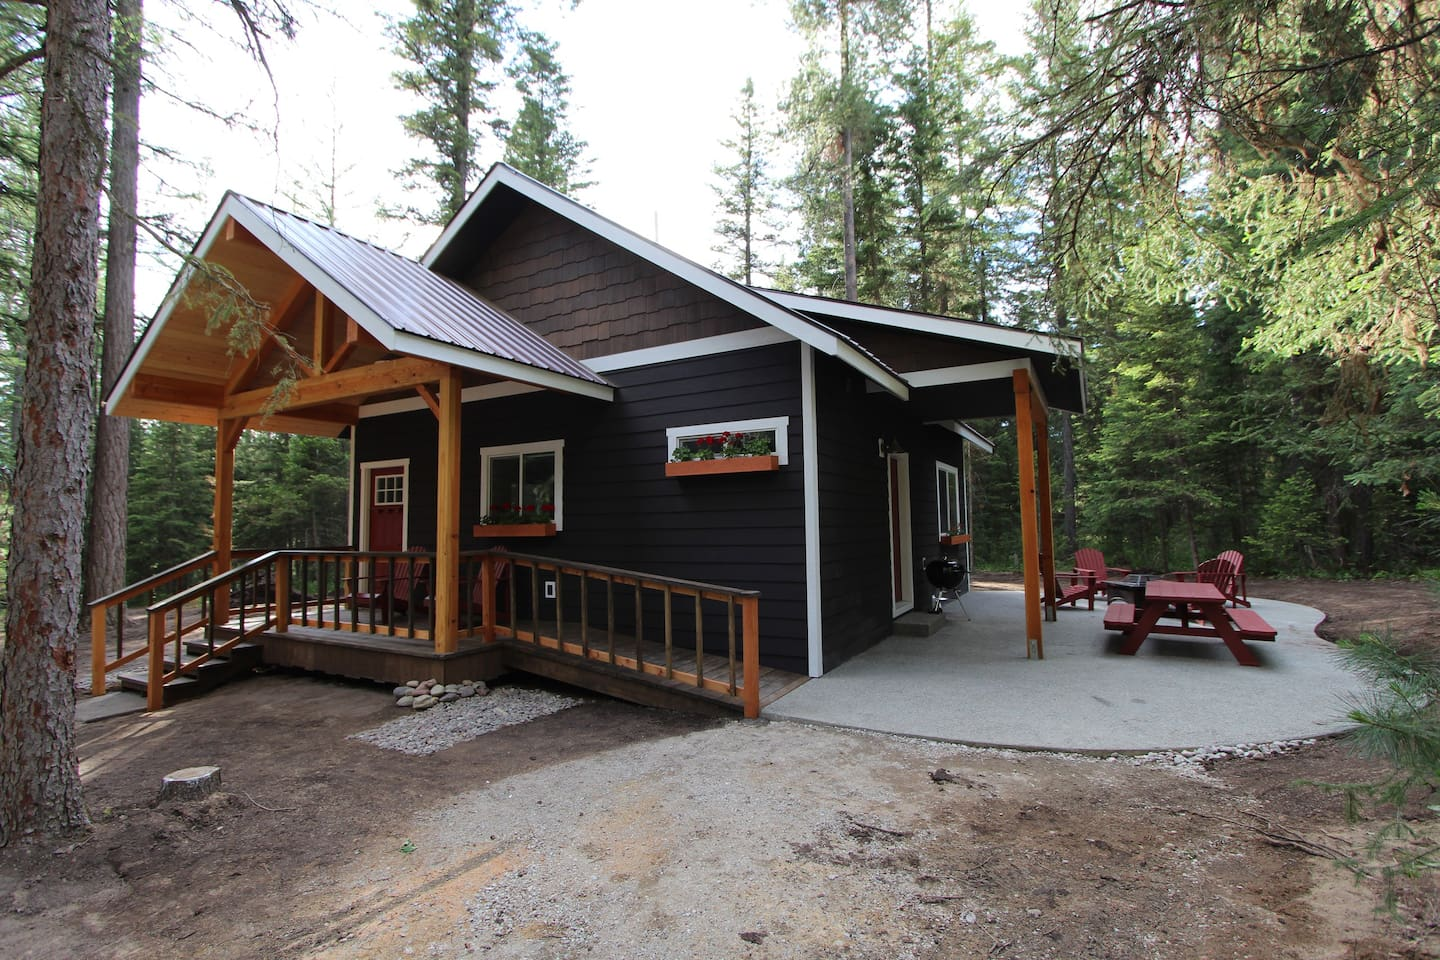 Secluded and private new cabin in the woods with patio, deck, porch, wheelchair access ramp.